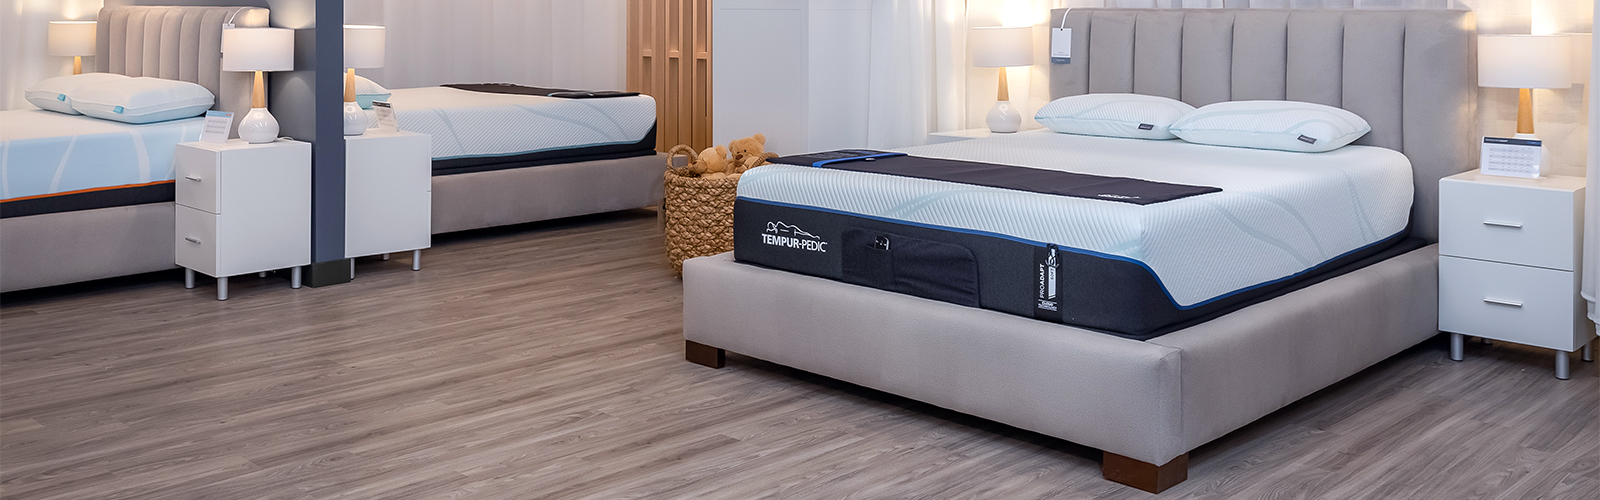 Tempur-Pedic ProAdapt Soft on display in a retail store